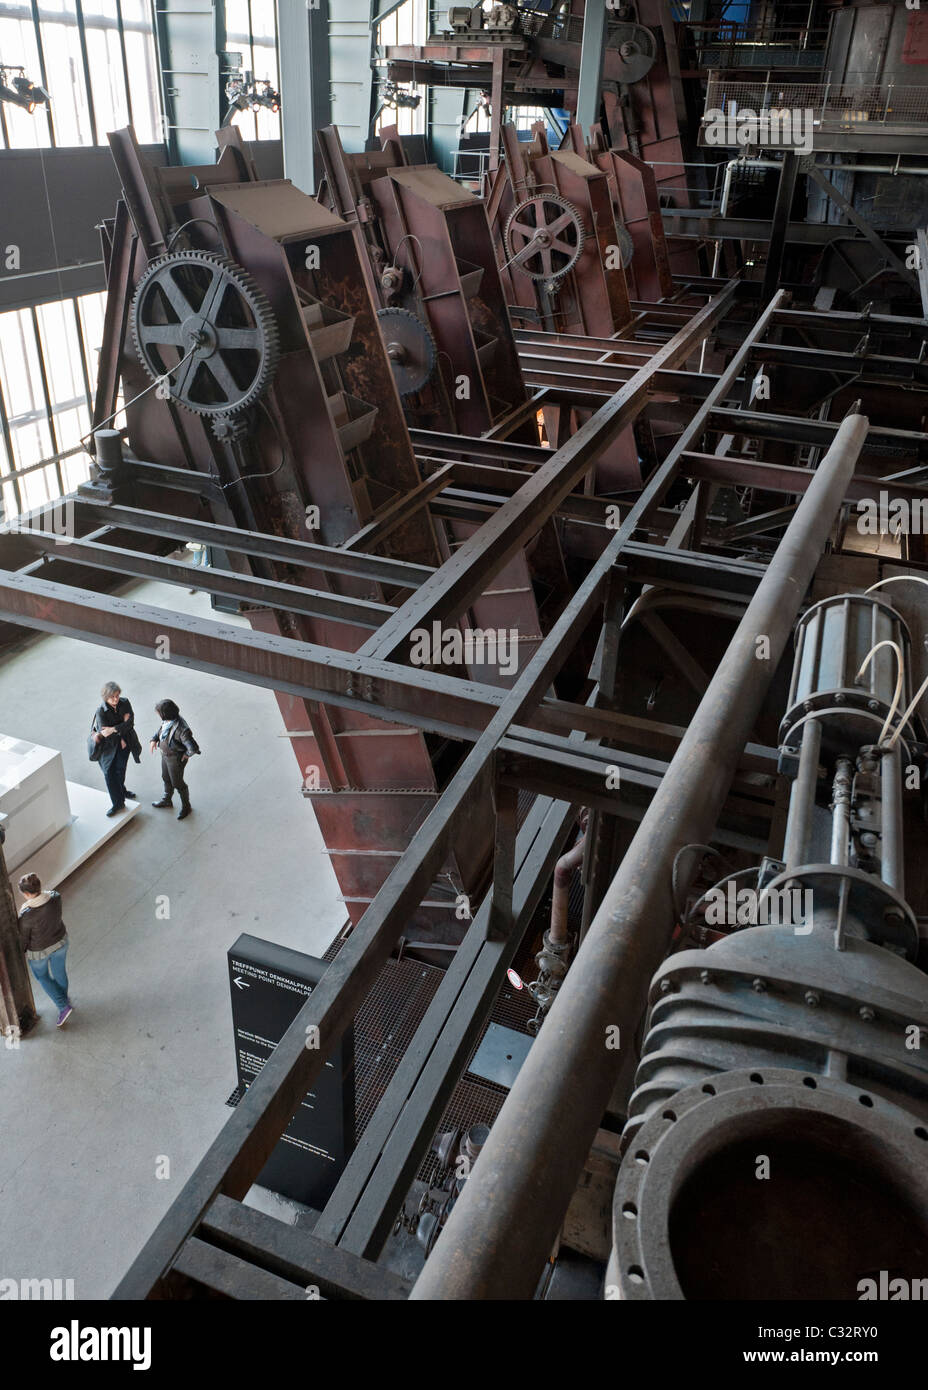 Interior of former coal mine at Zollverein in Essen Germany now UNESCO World Heritage Site - Stock Image